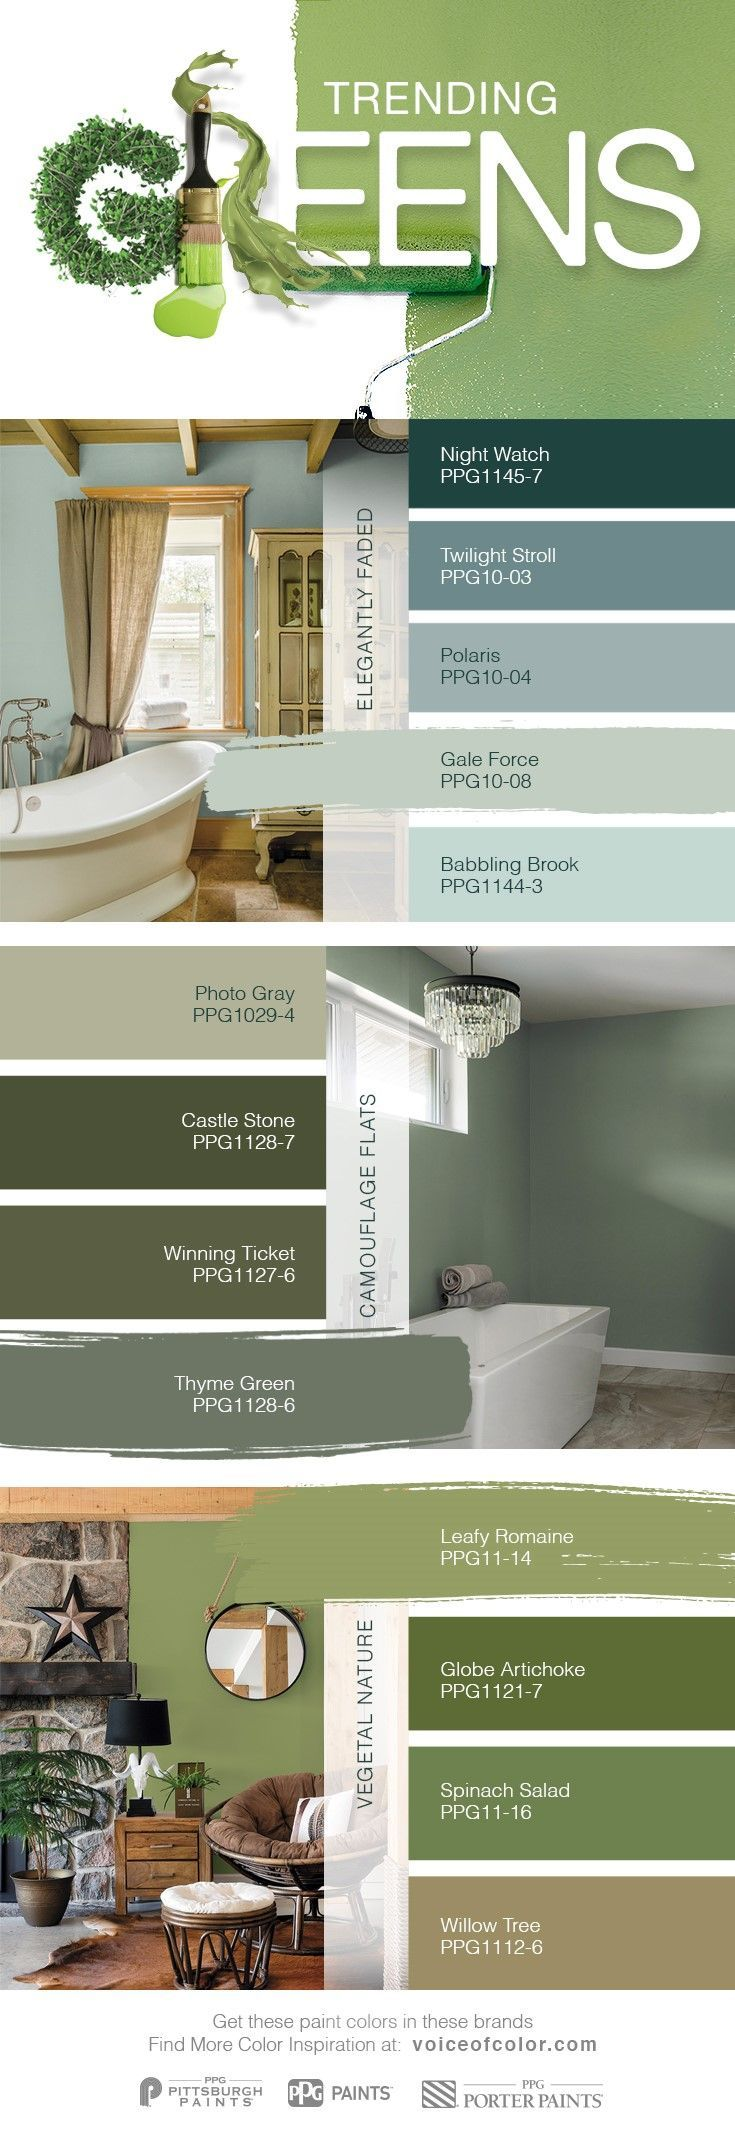 Trending Green Paint Colors For 2017 The Natural World - Farben Für Wohnzimmer 2017